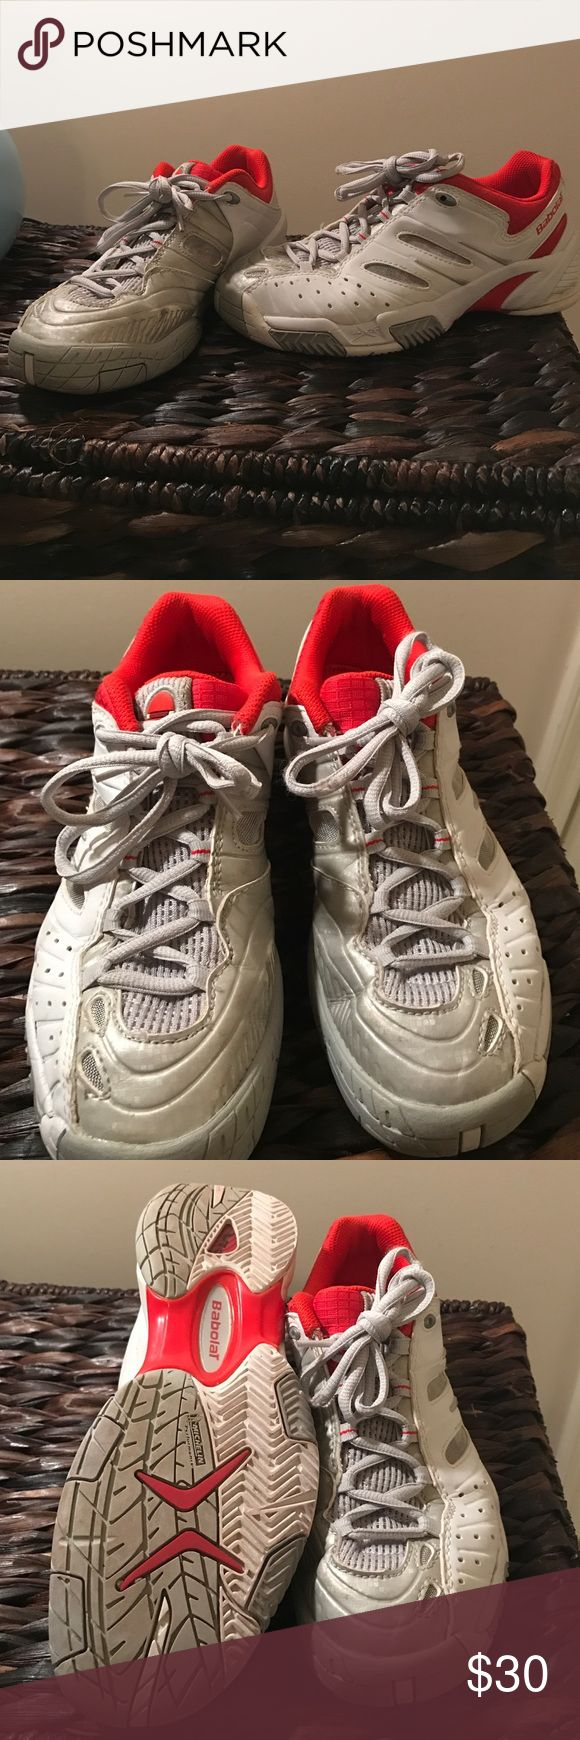 BABOLAT tennis sneakers sz 7.5 EUC Excellent condition, size 7.5. Non marking Michelin sole, meant for the tennis court! Nike Shoes Athletic Shoes